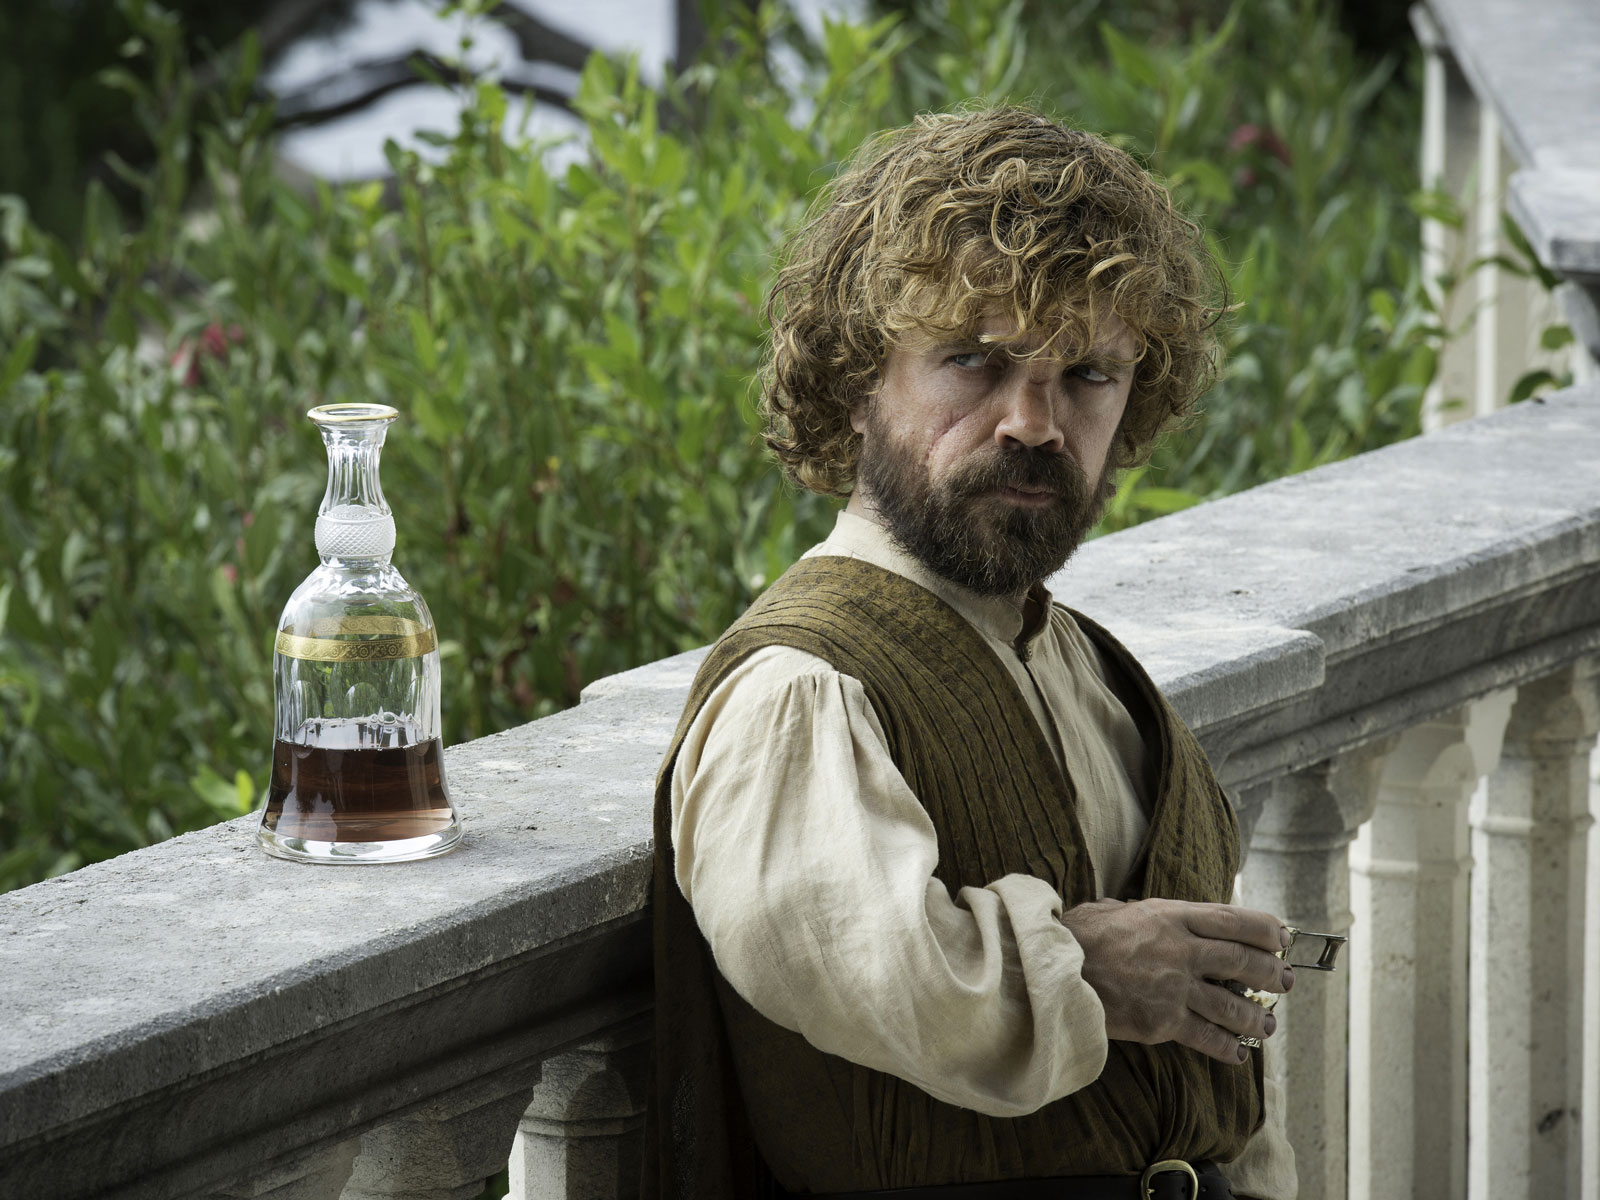 game-of-thrones-booze-FT-BLOG1018.jpg